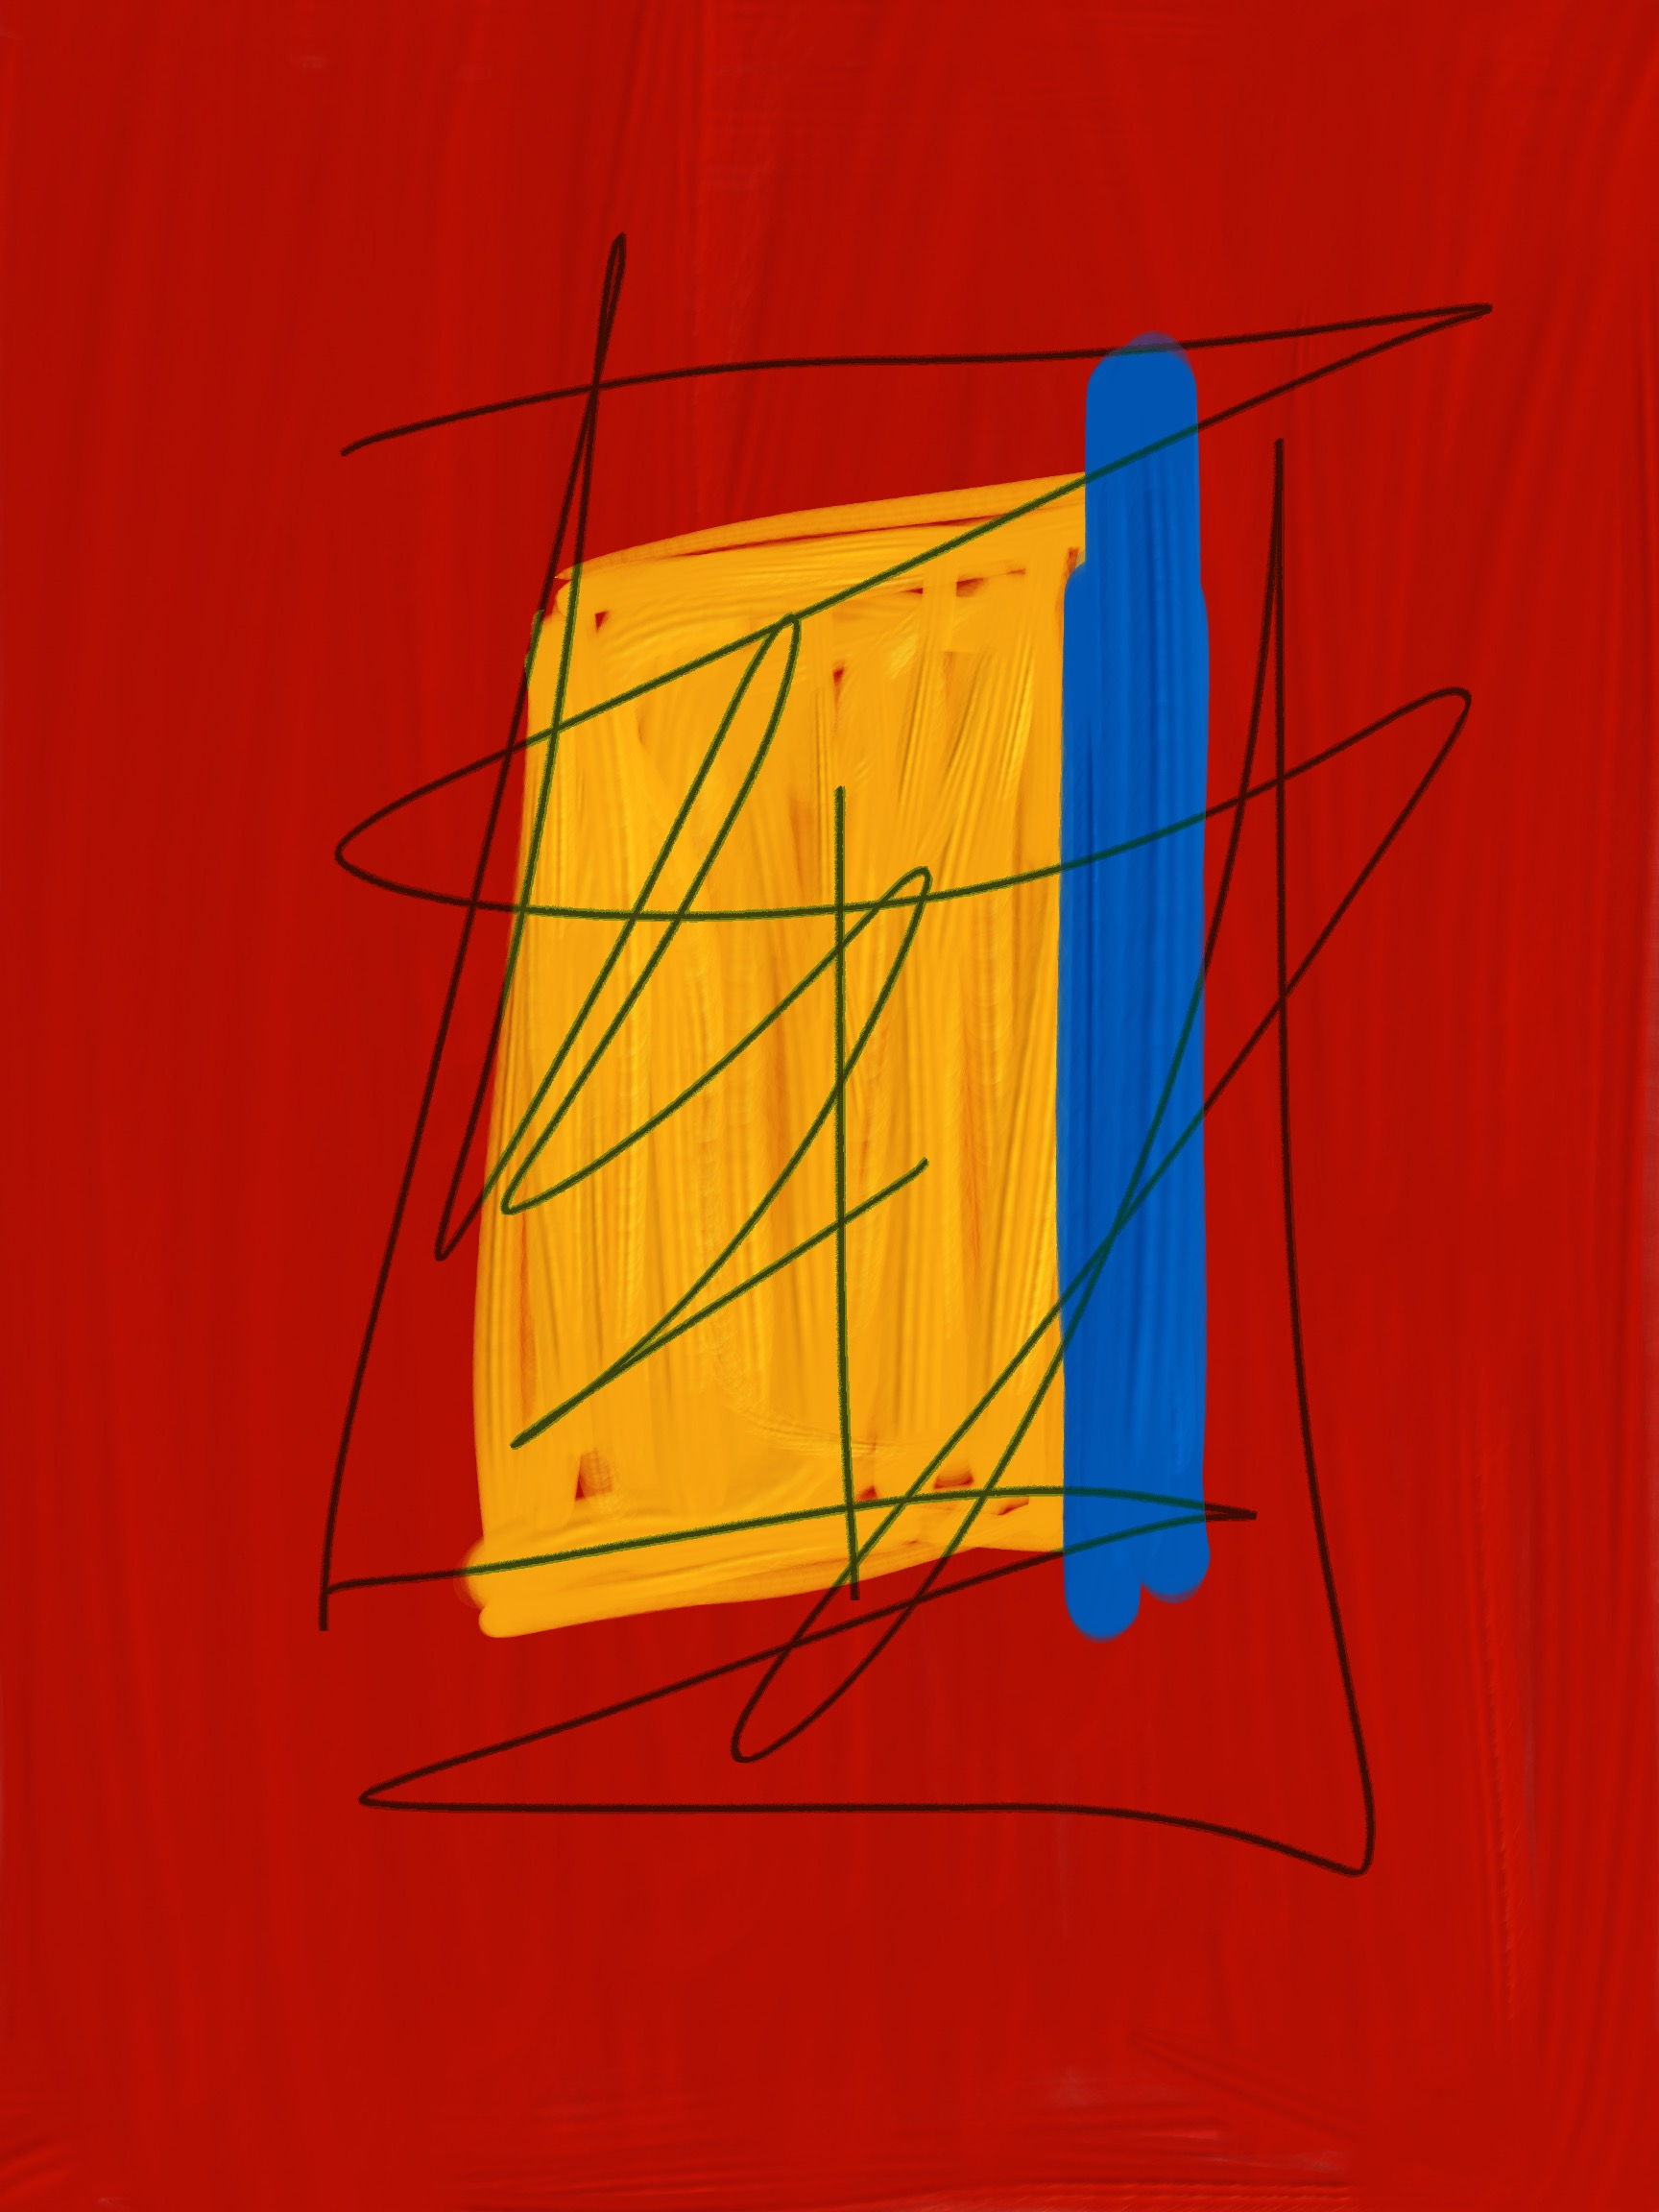 Yellow and Blue on Red Abstract Painting